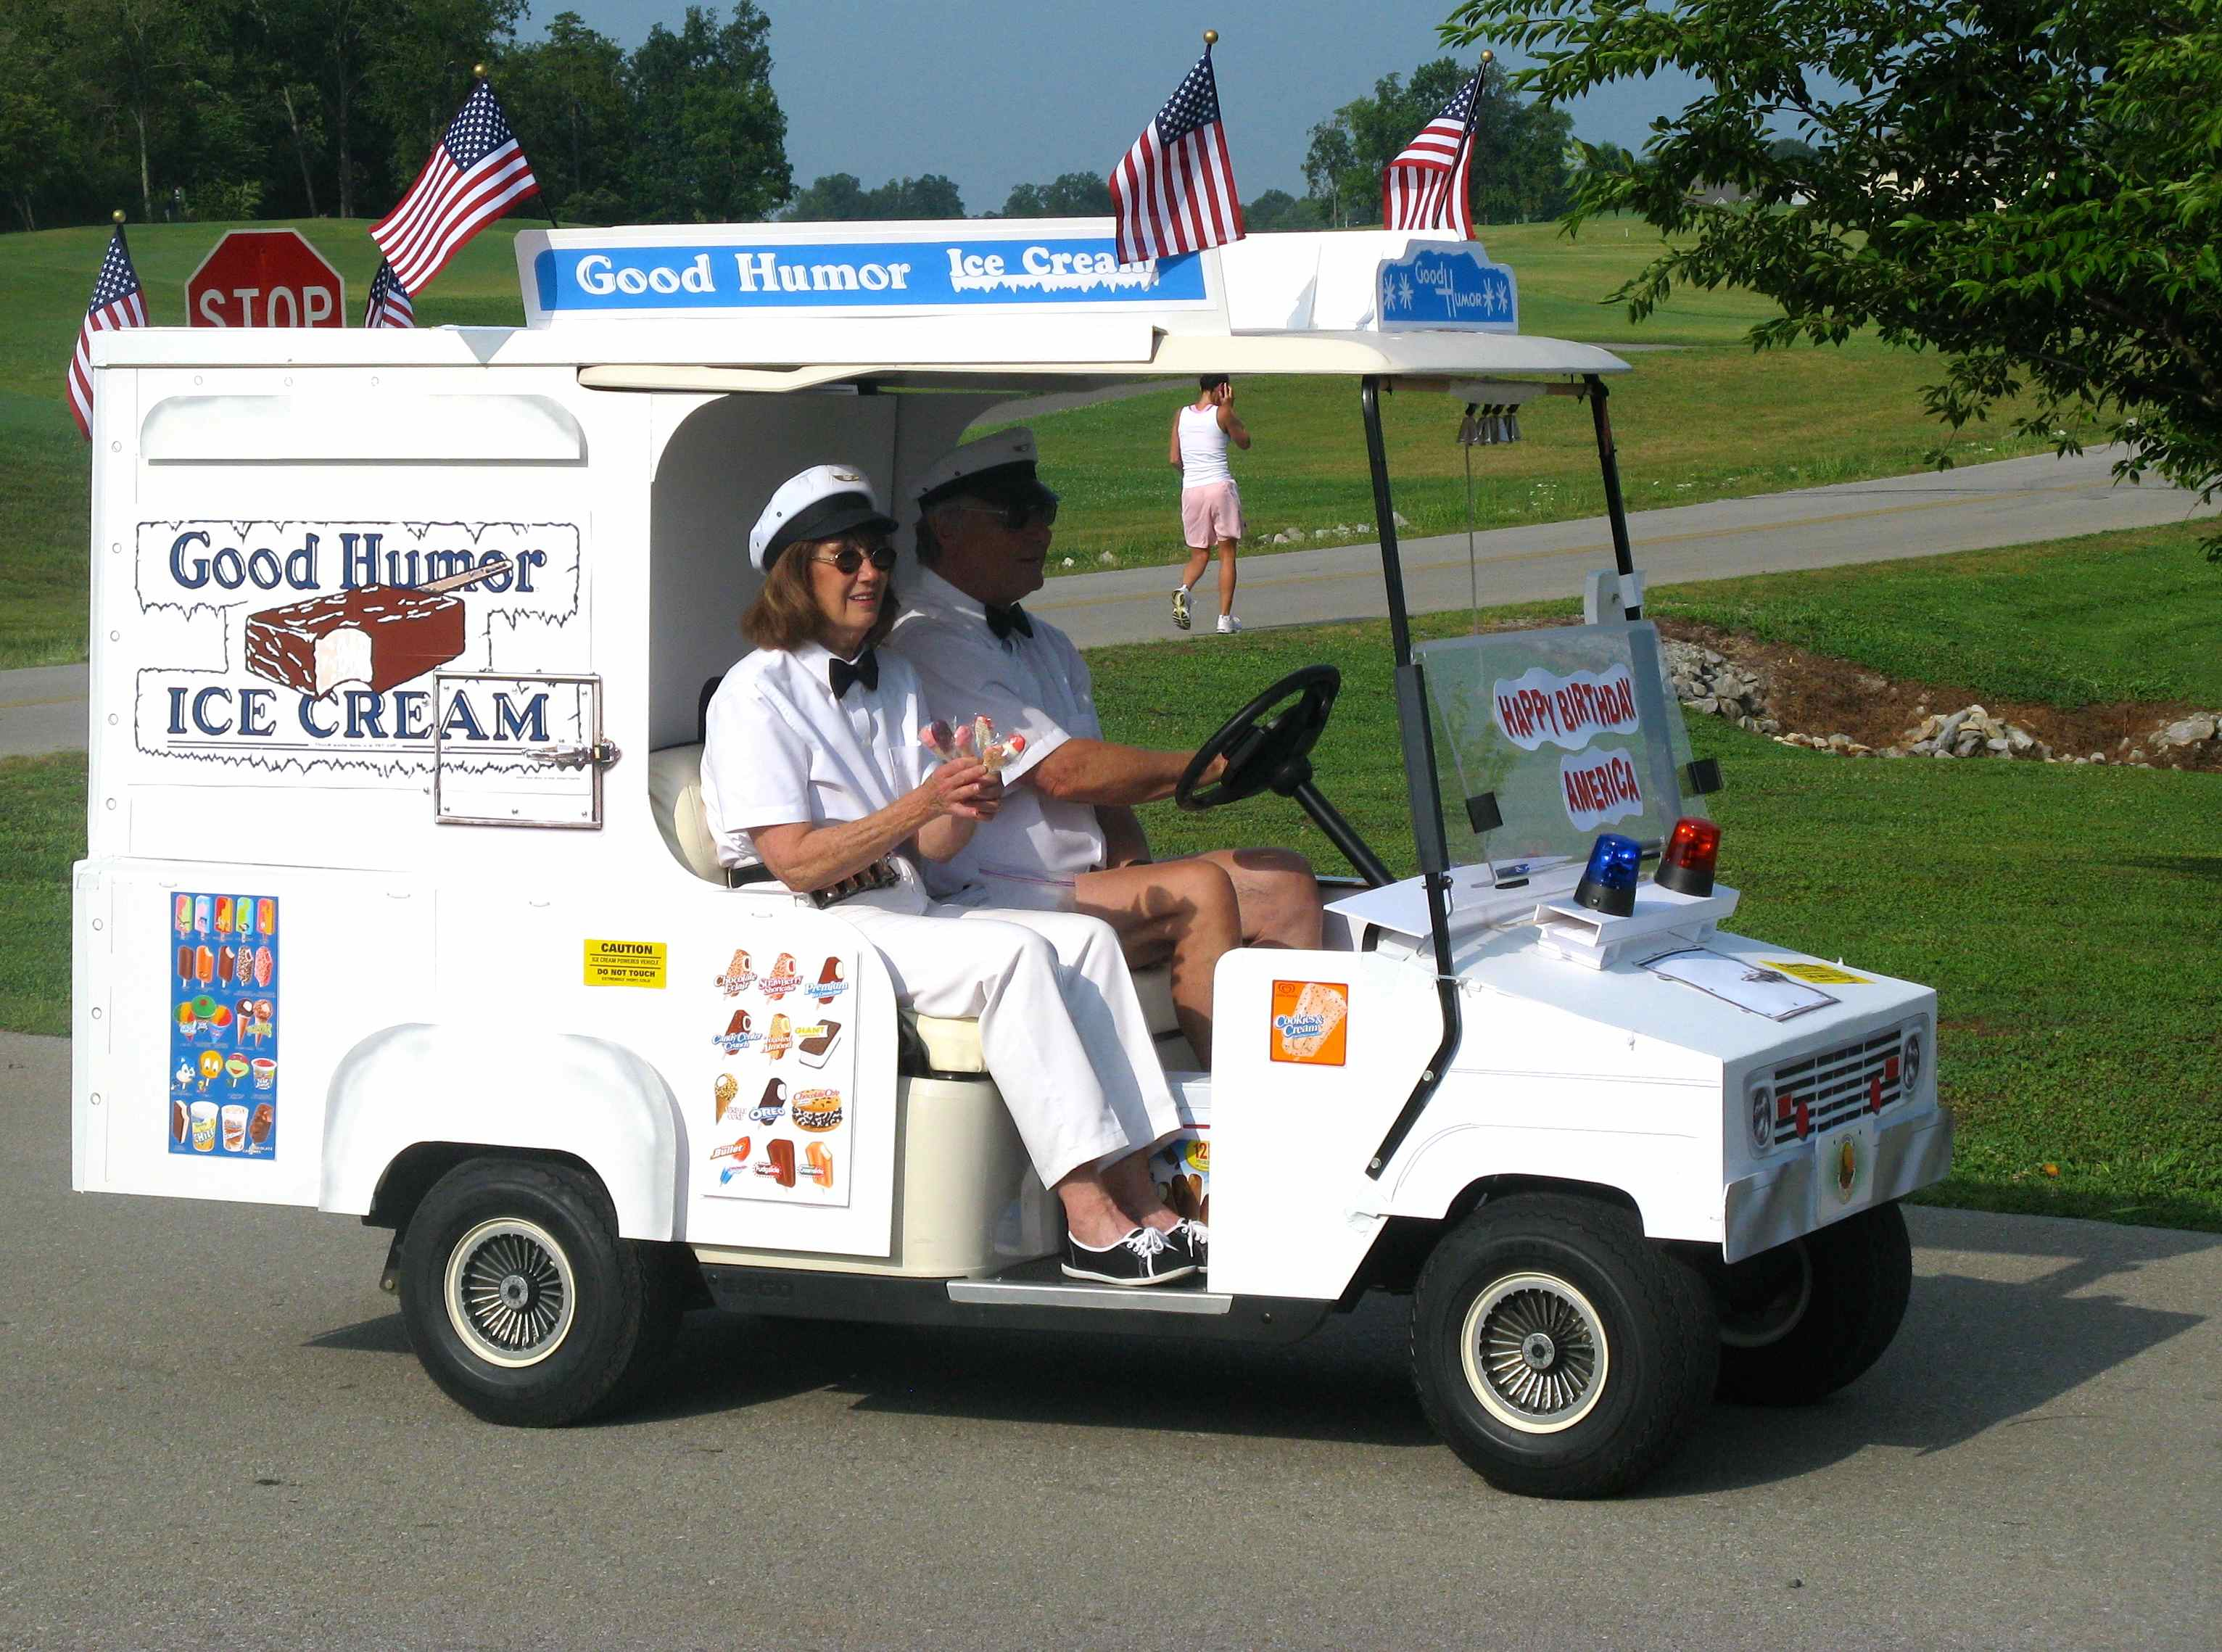 July Fourth celebrations, Good Humor ice cream truck